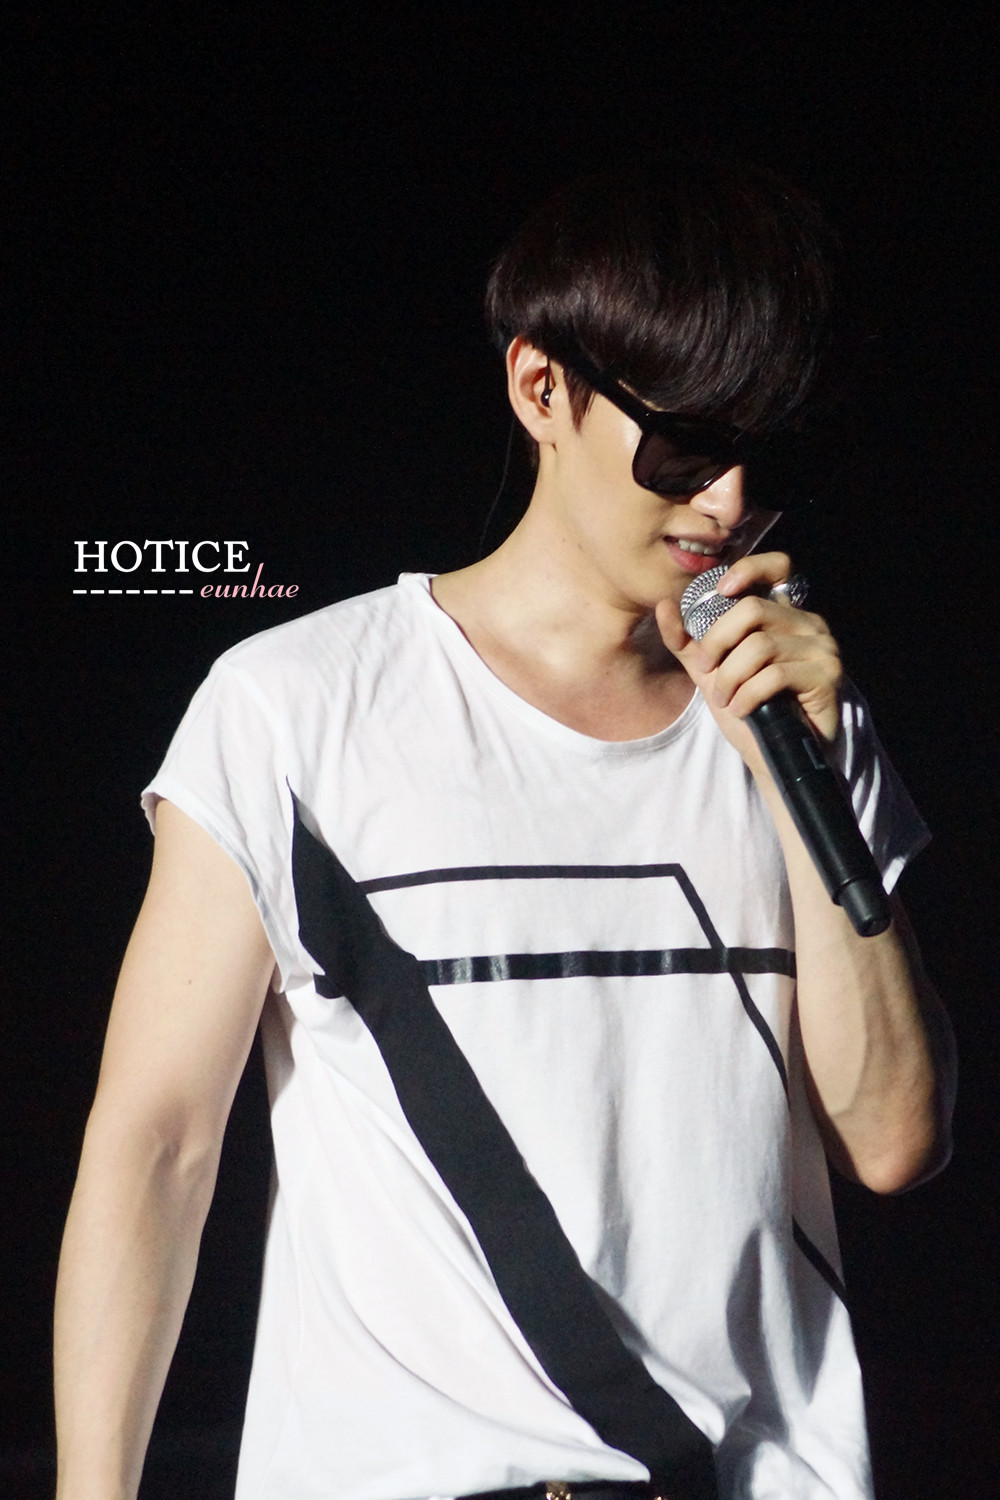 cr HotIce赫海 // do not edit or remove logo